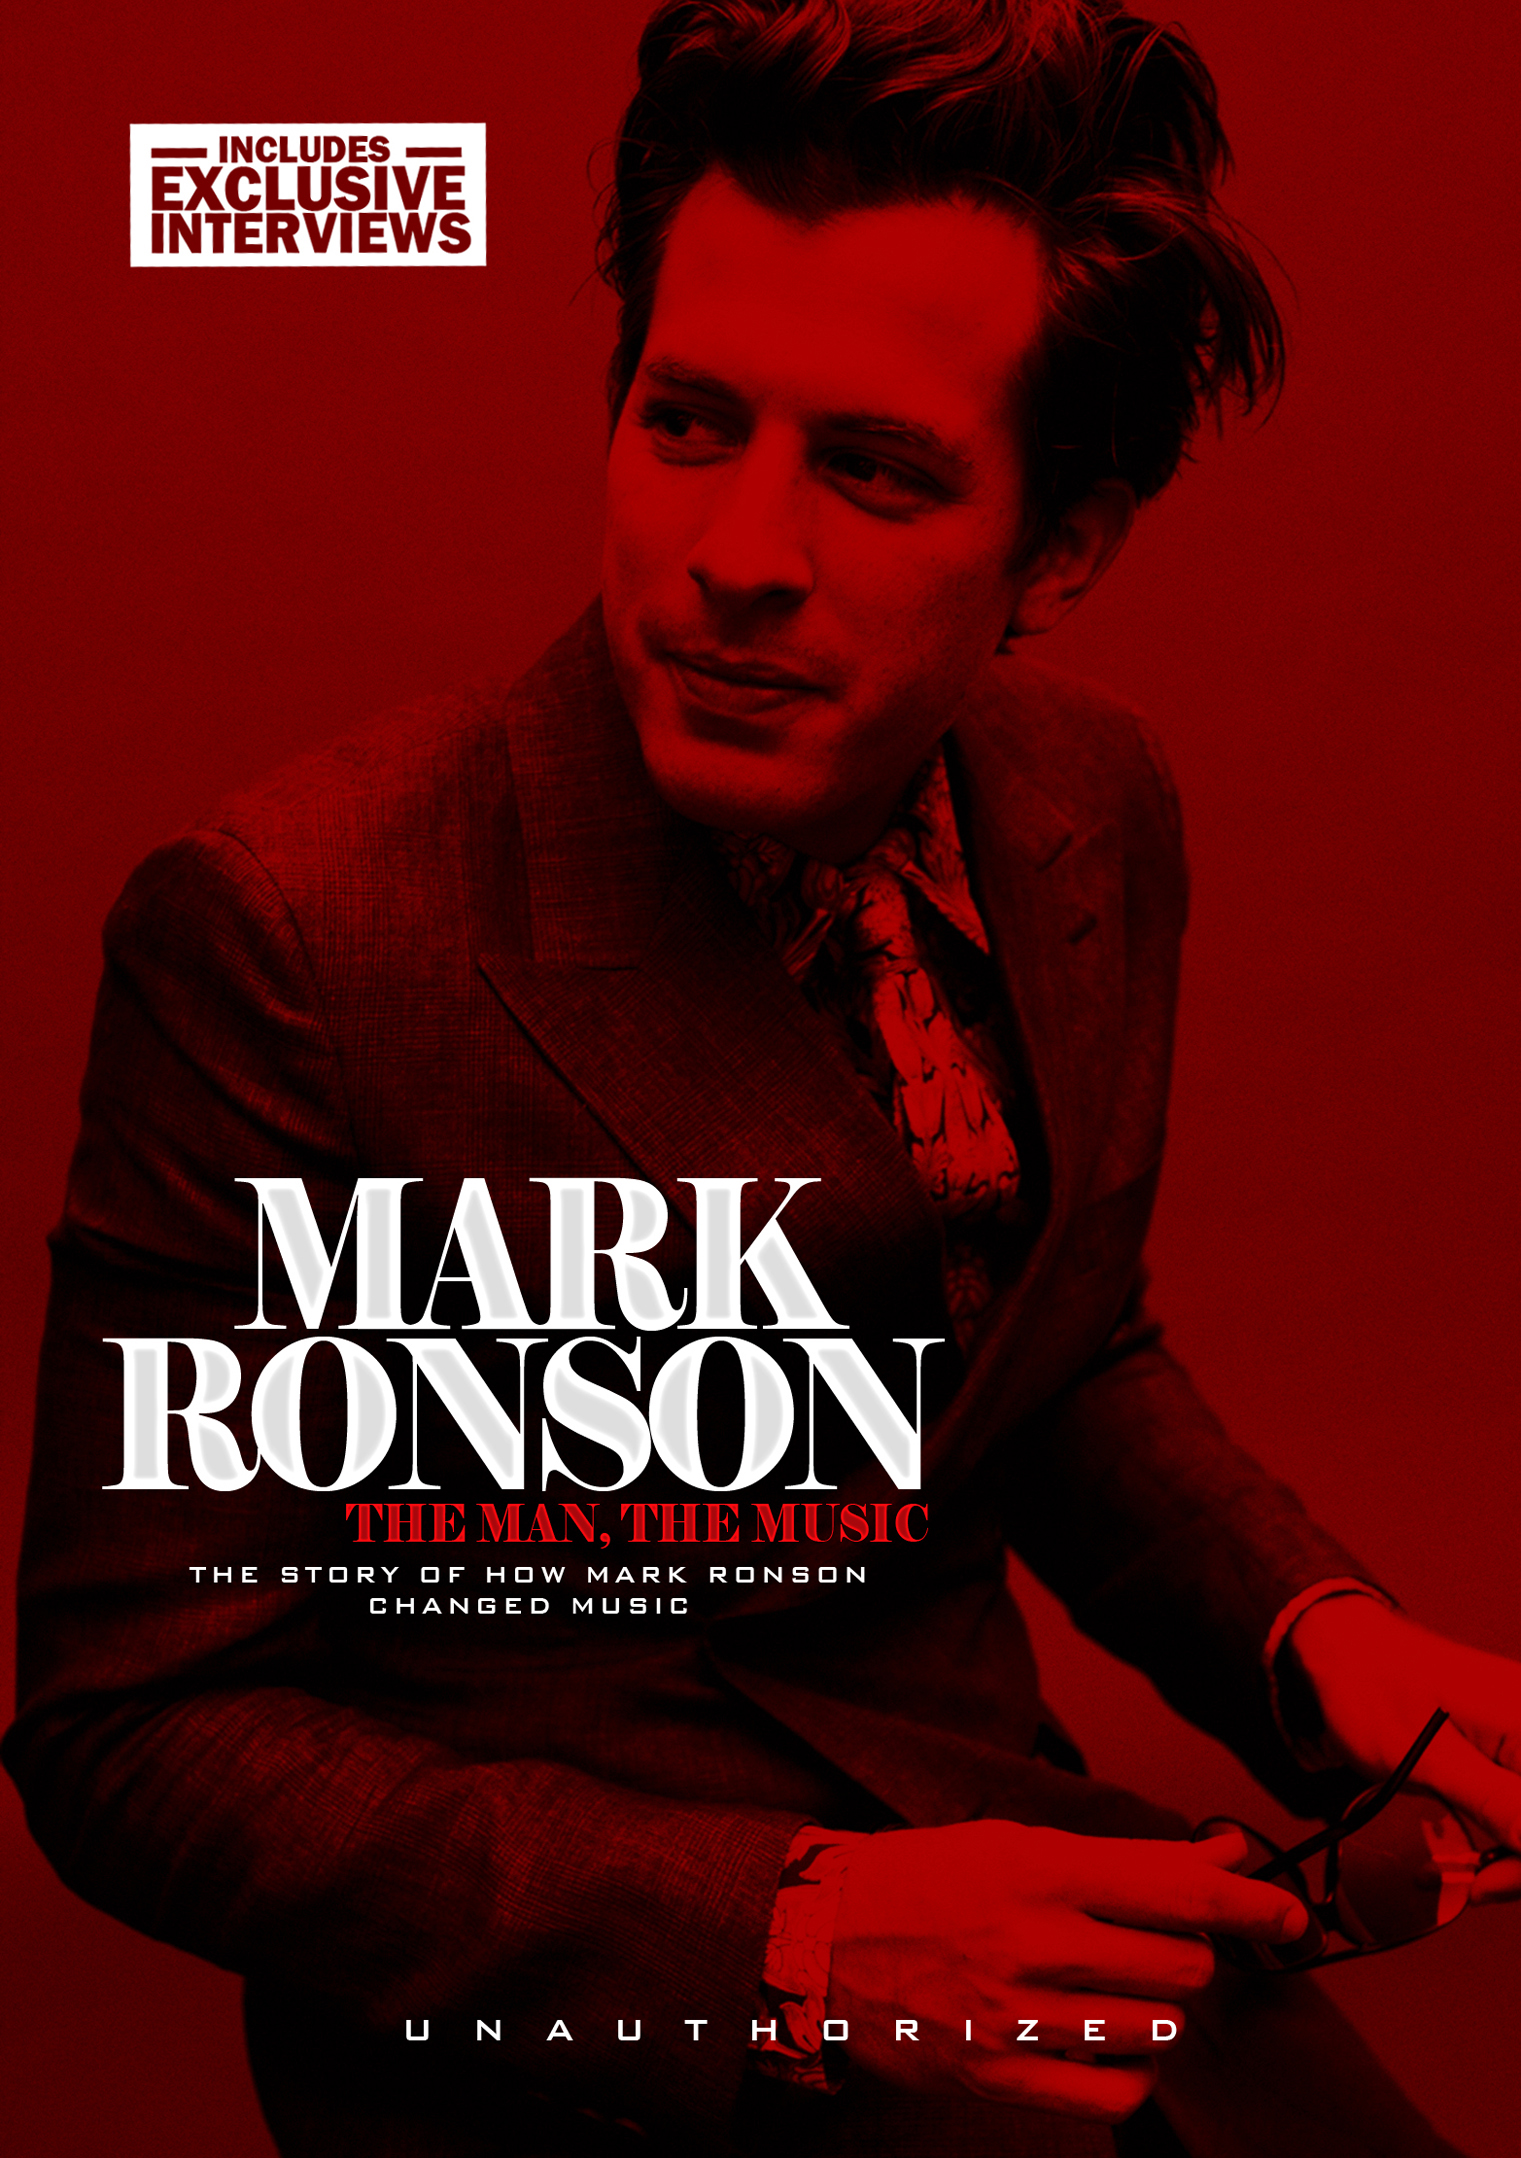 Mark Ronson: The Man, The Music